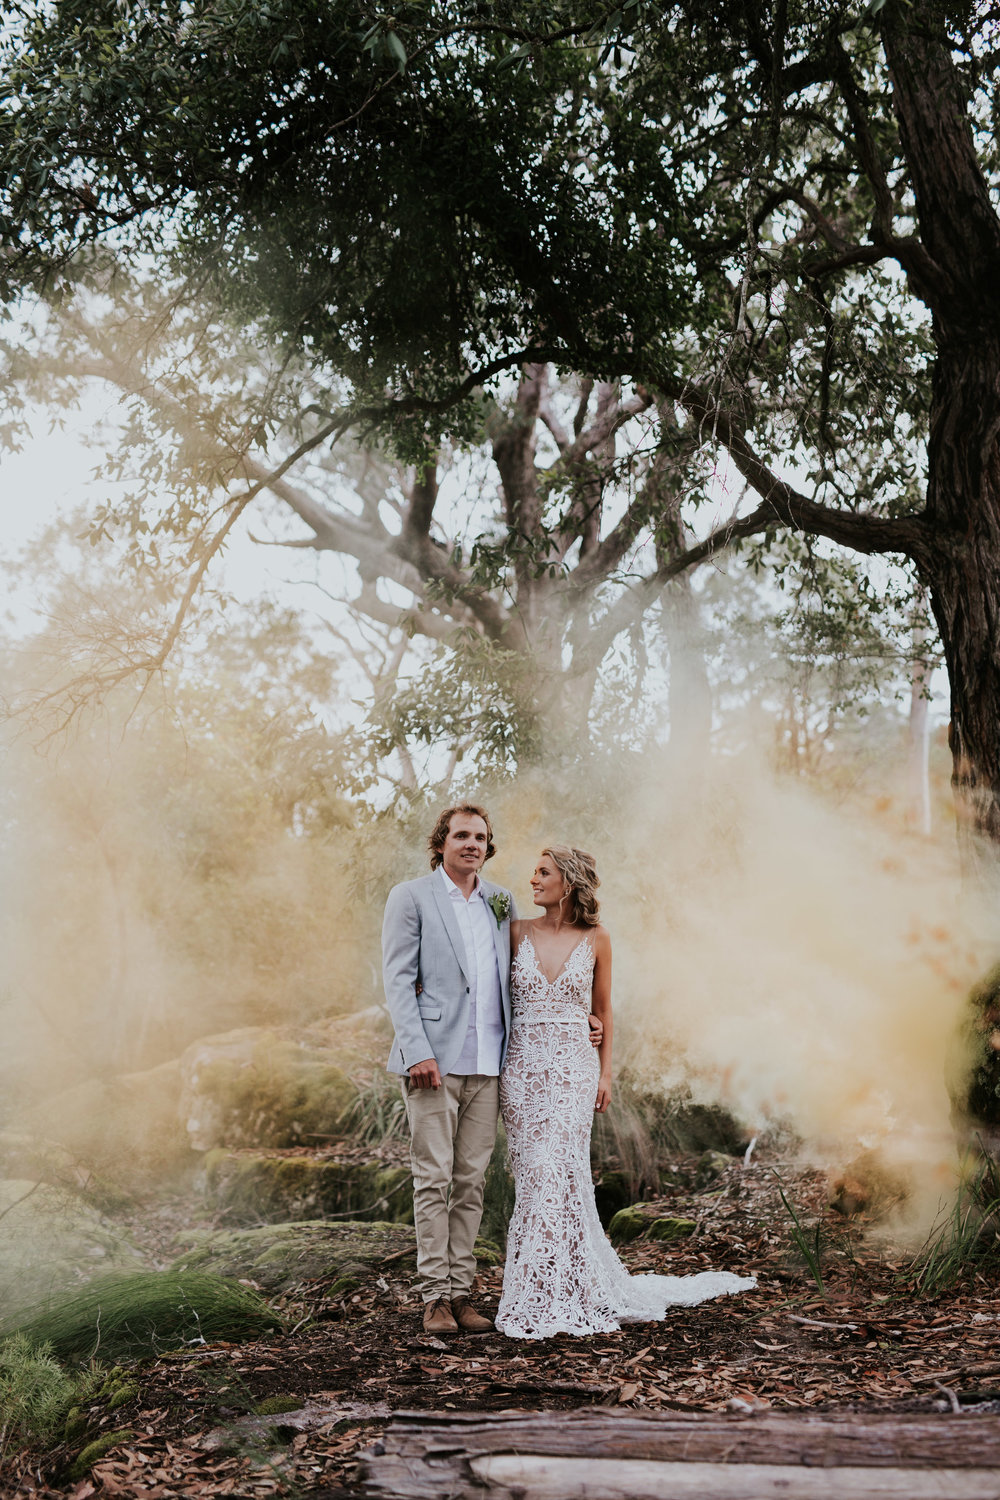 Jesse+Matt+Kangaroo+Valley+Wildwood+Boho+Relaxed+wedding+-168.jpg